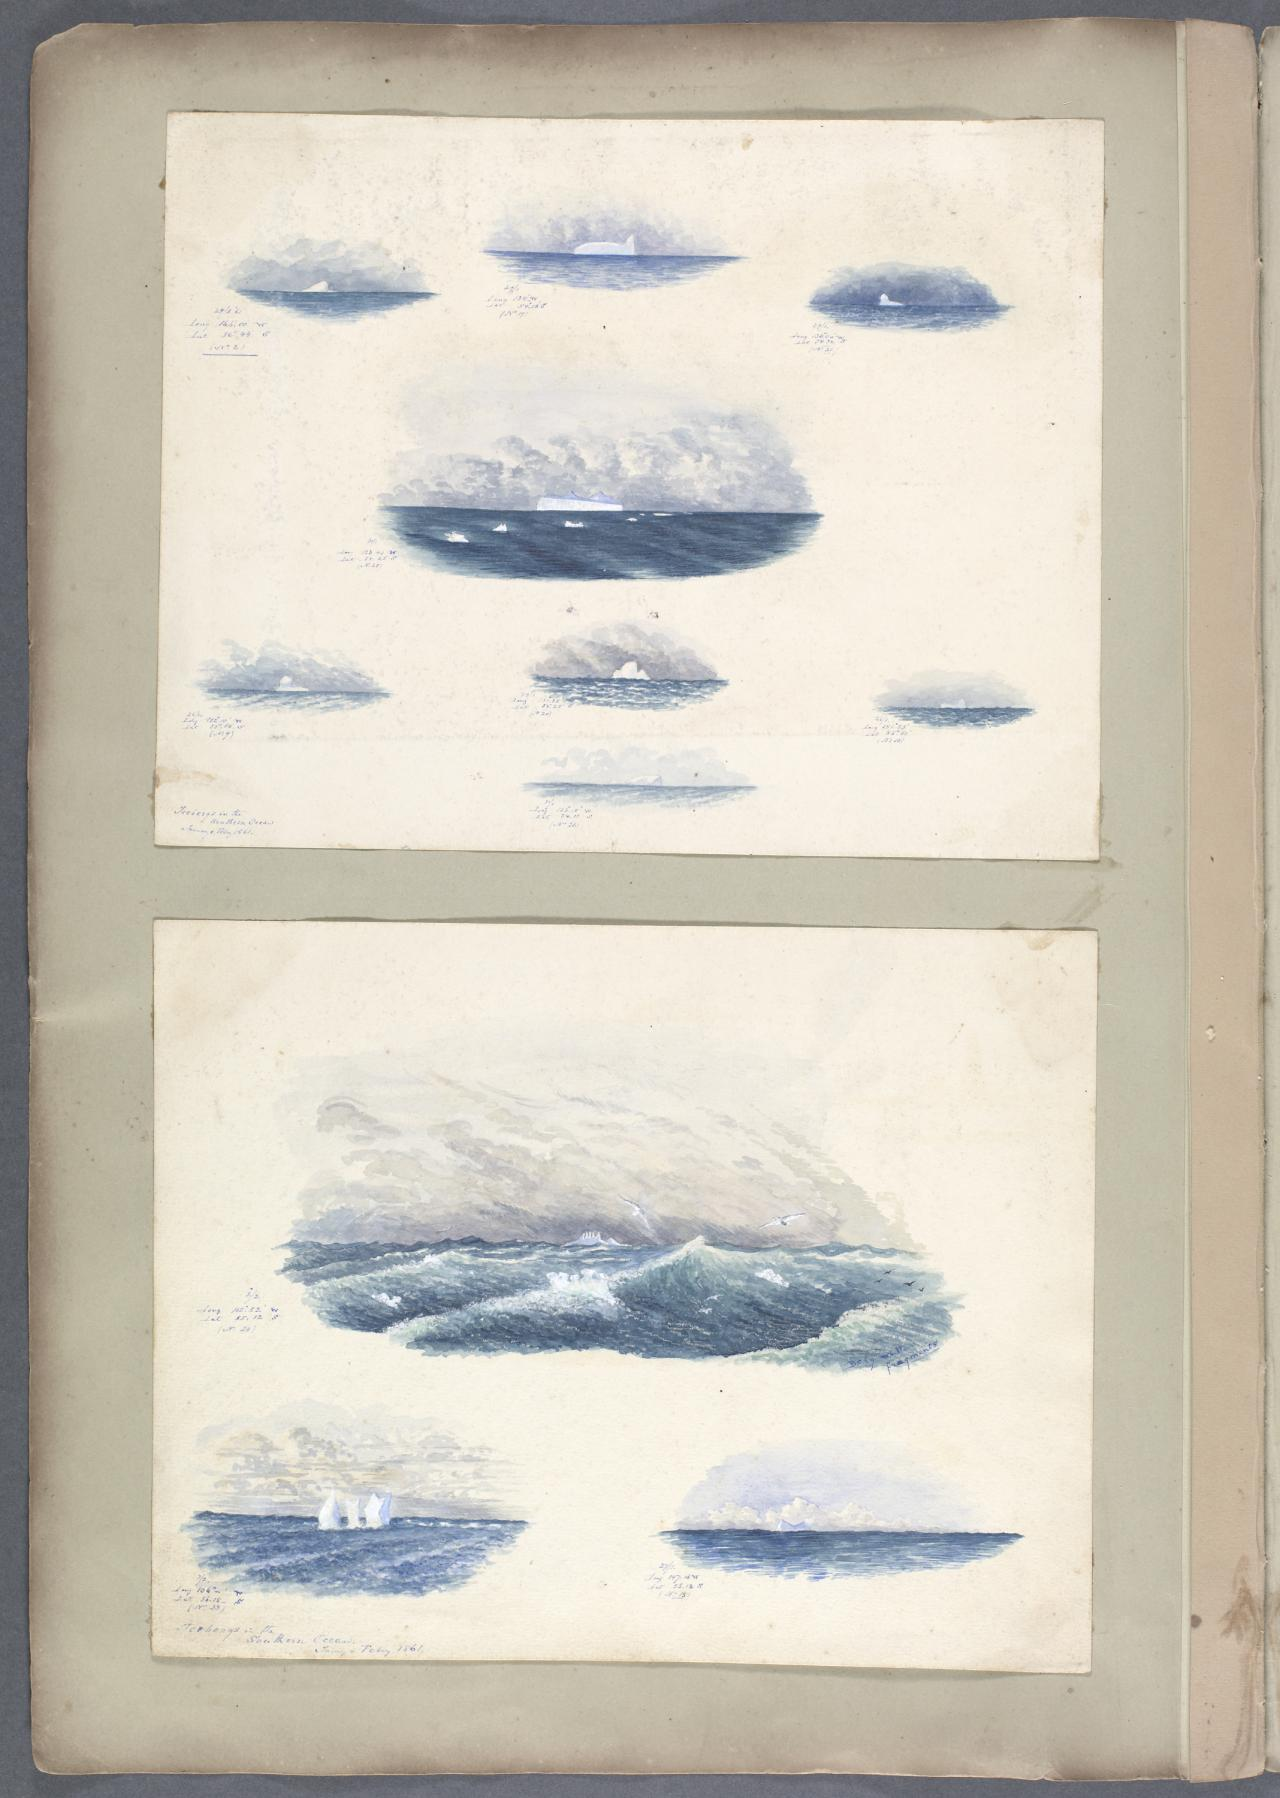 Icebergs in the Southern Ocean, January and February 1861